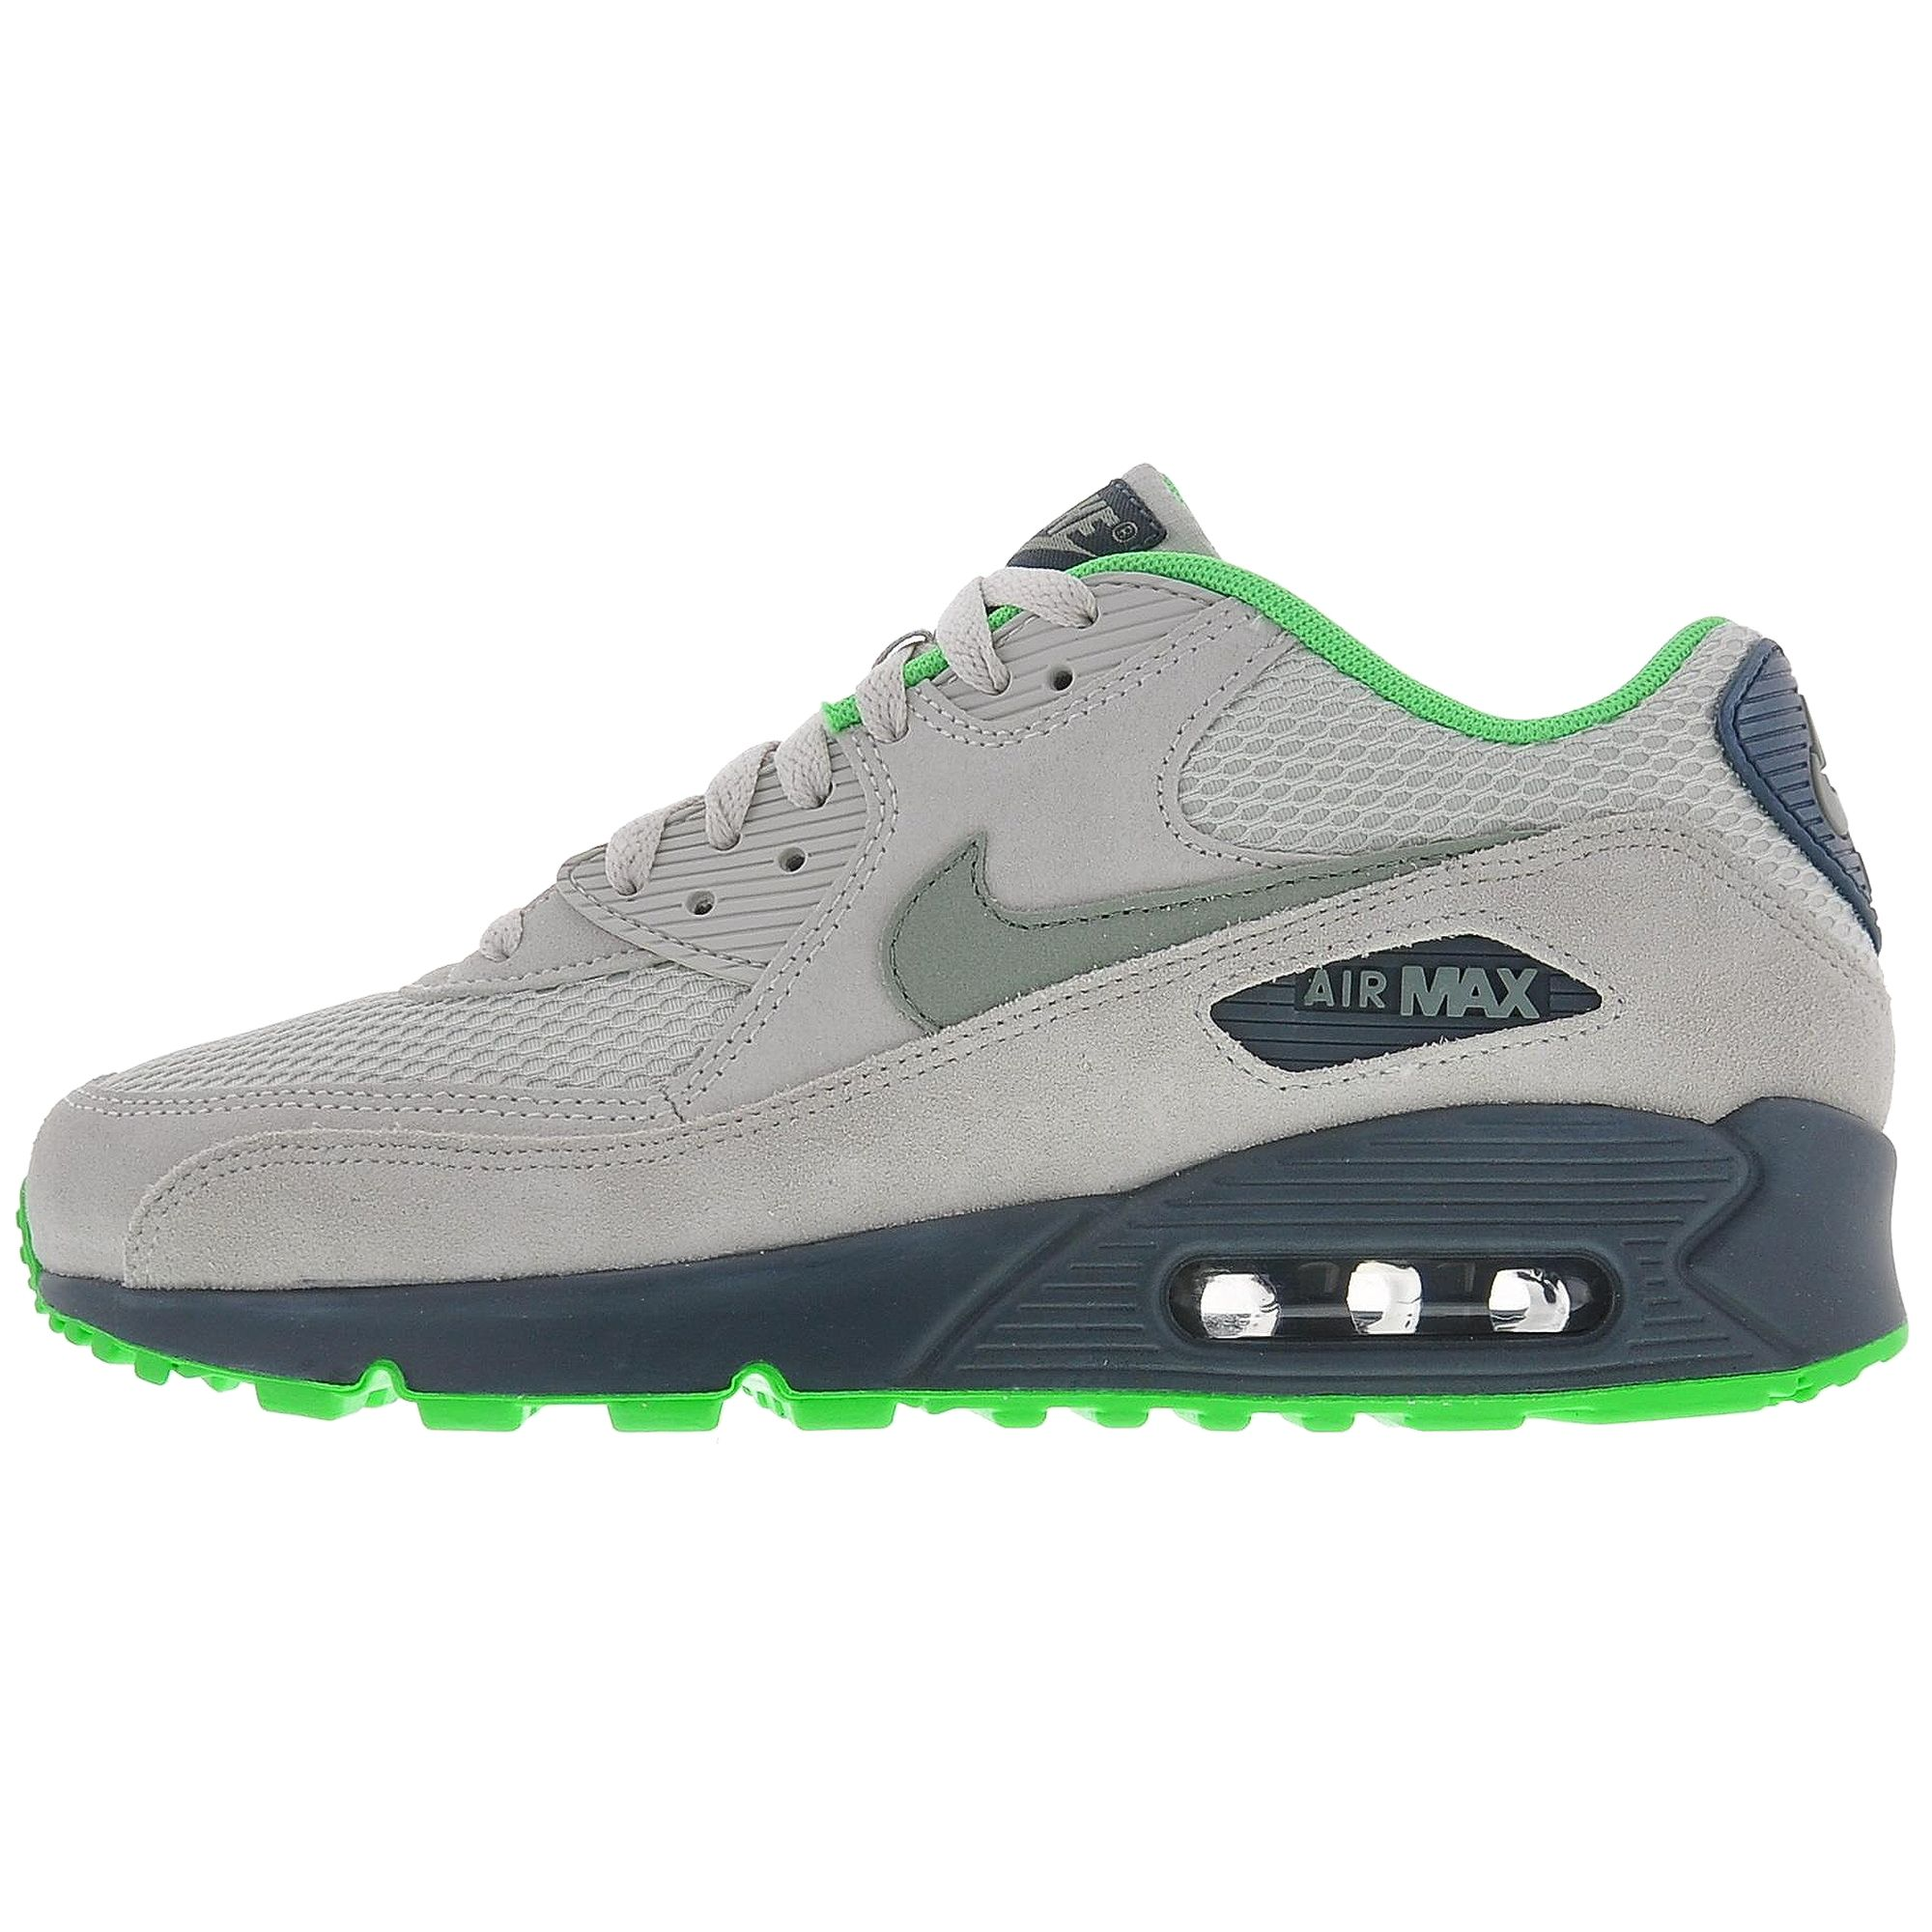 Nike Air Max 90 Usa Hyperfuse Chaussures De Sport Unisexe